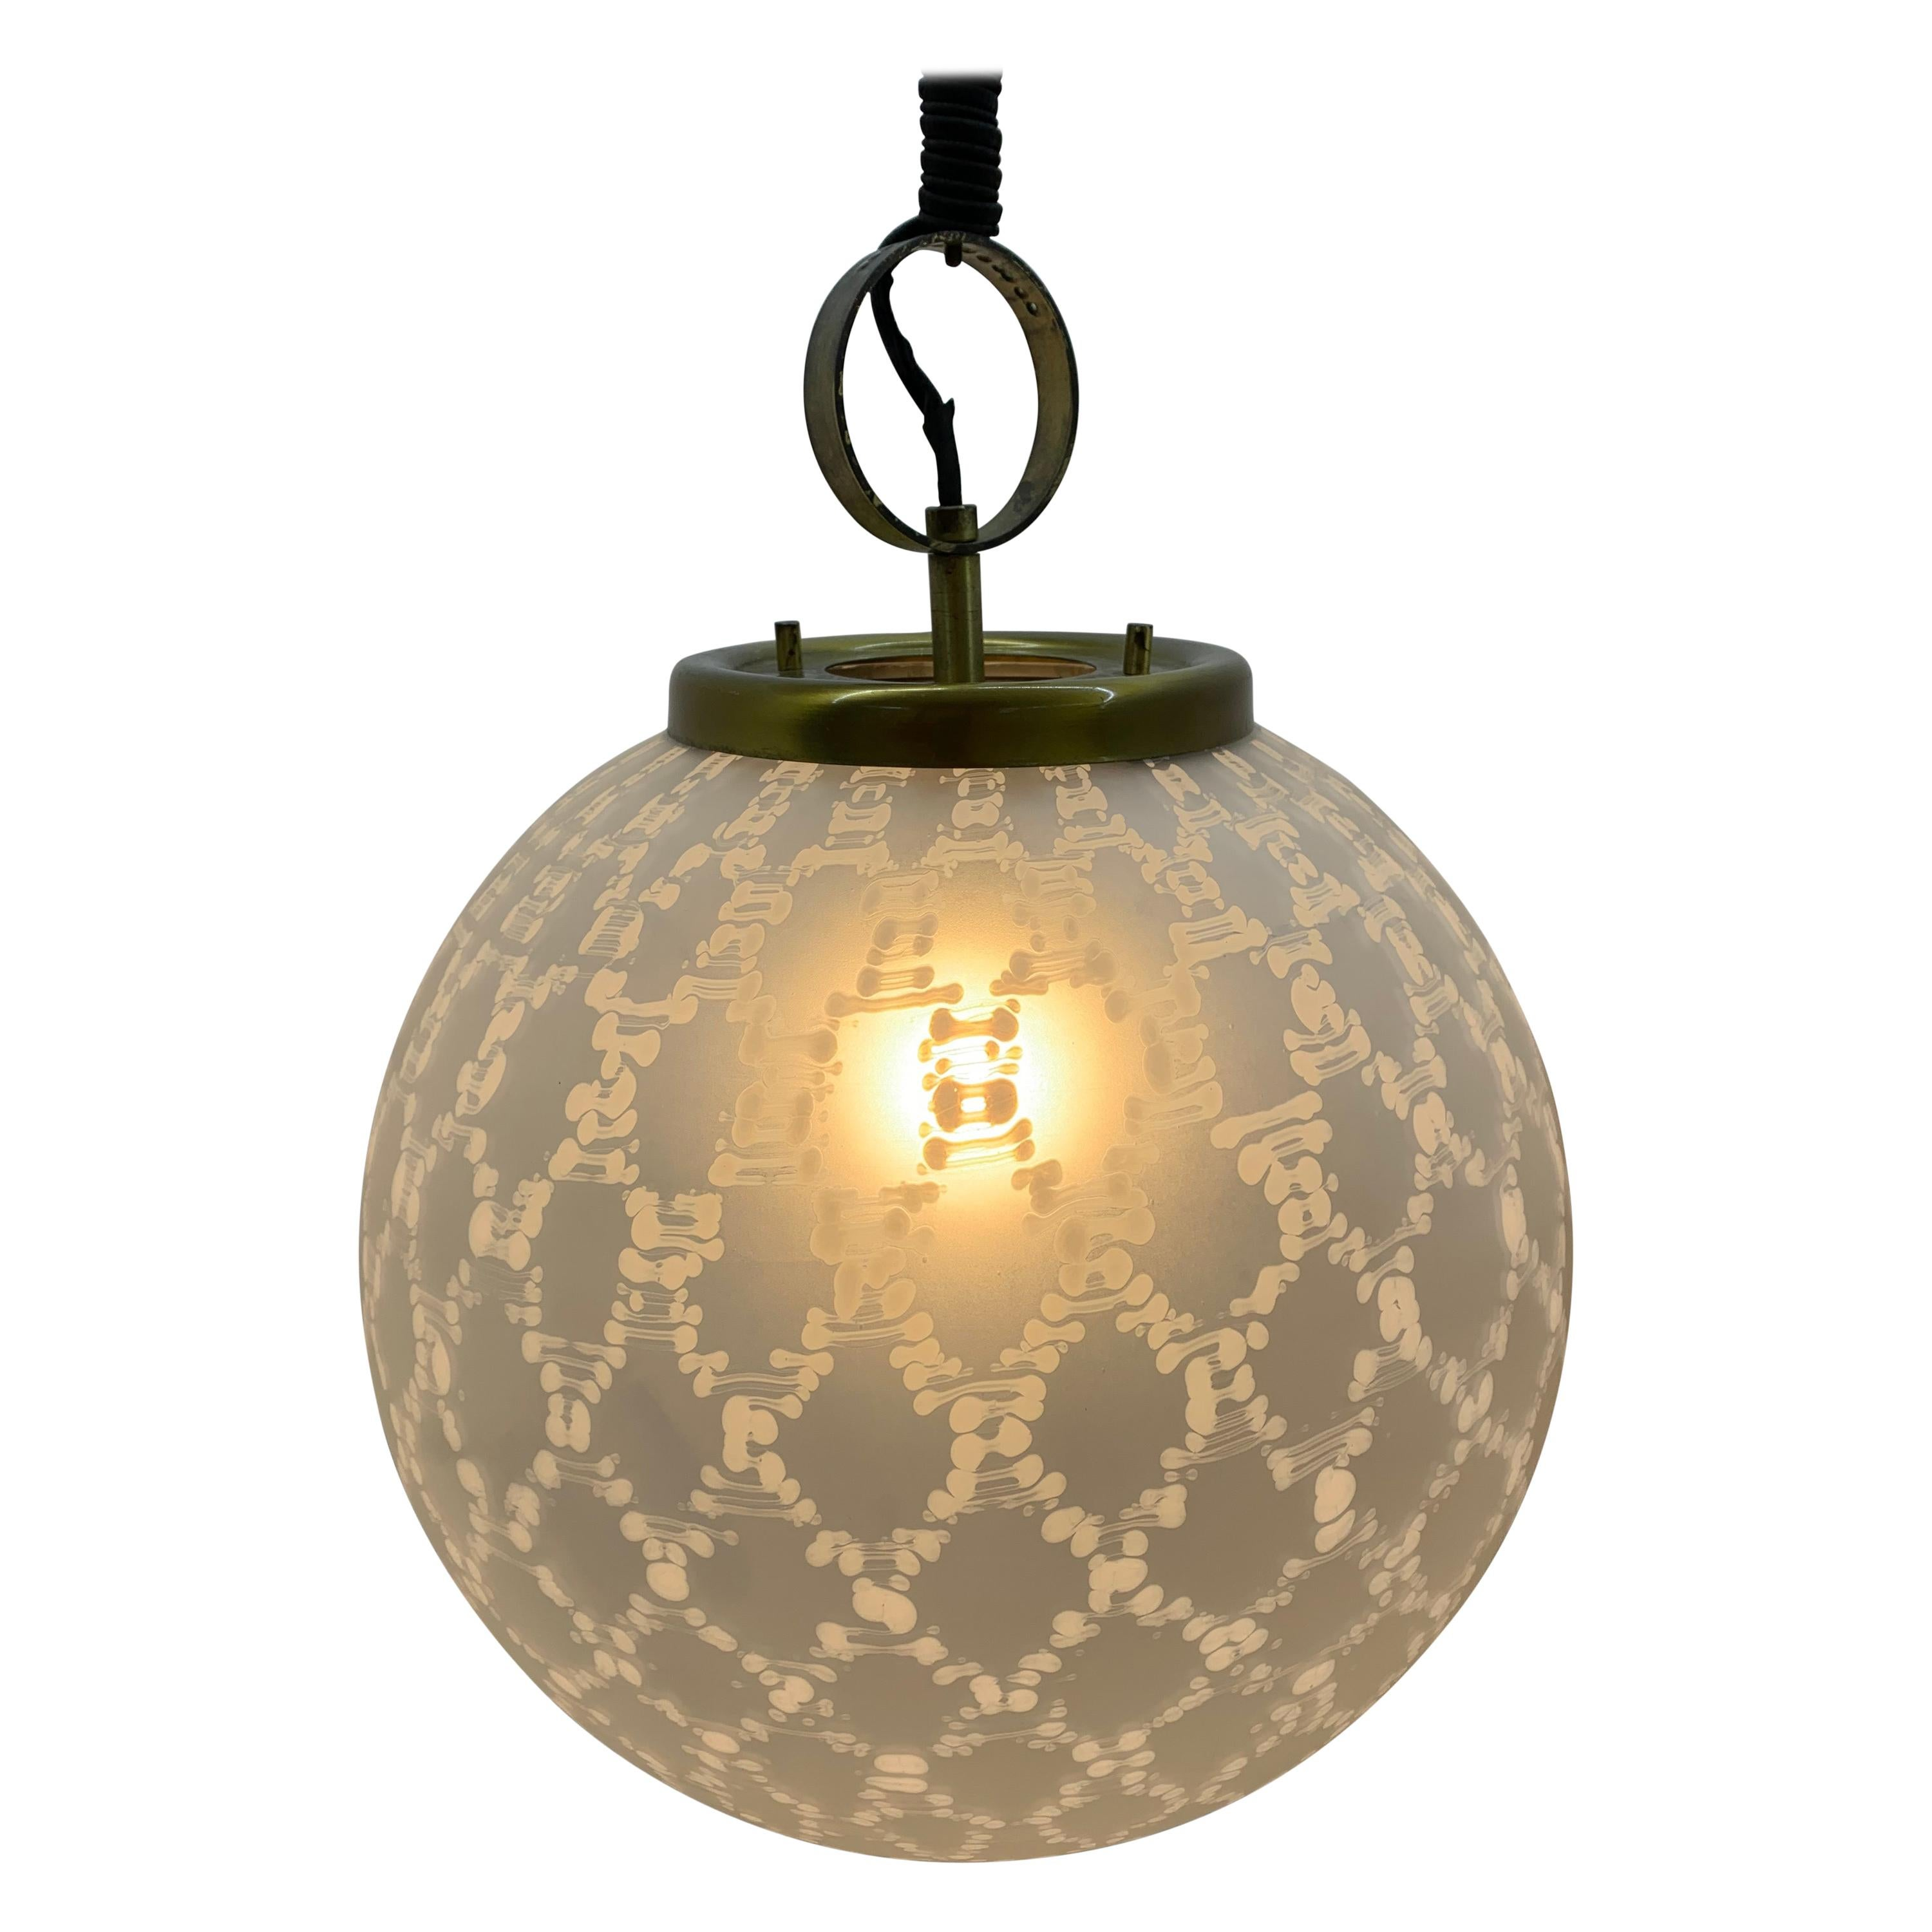 Large Mid-Century Modern Sphere Chandelier in Murano Glass by Venini, circa 1970